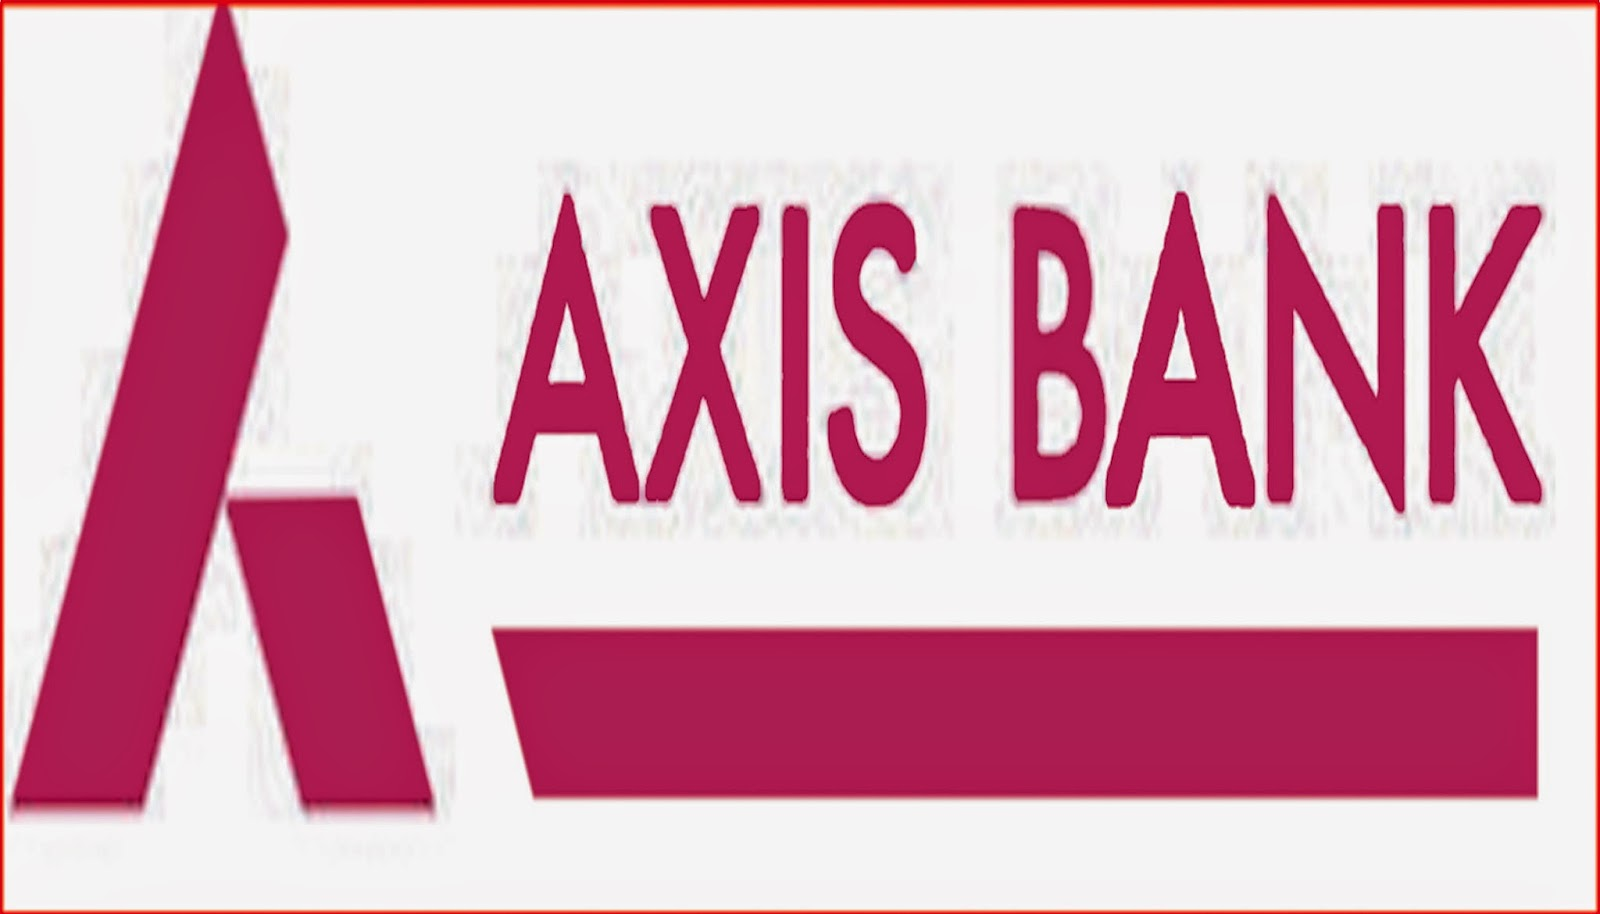 Axis bank home loan contact number | COOKING WITH THE PROS